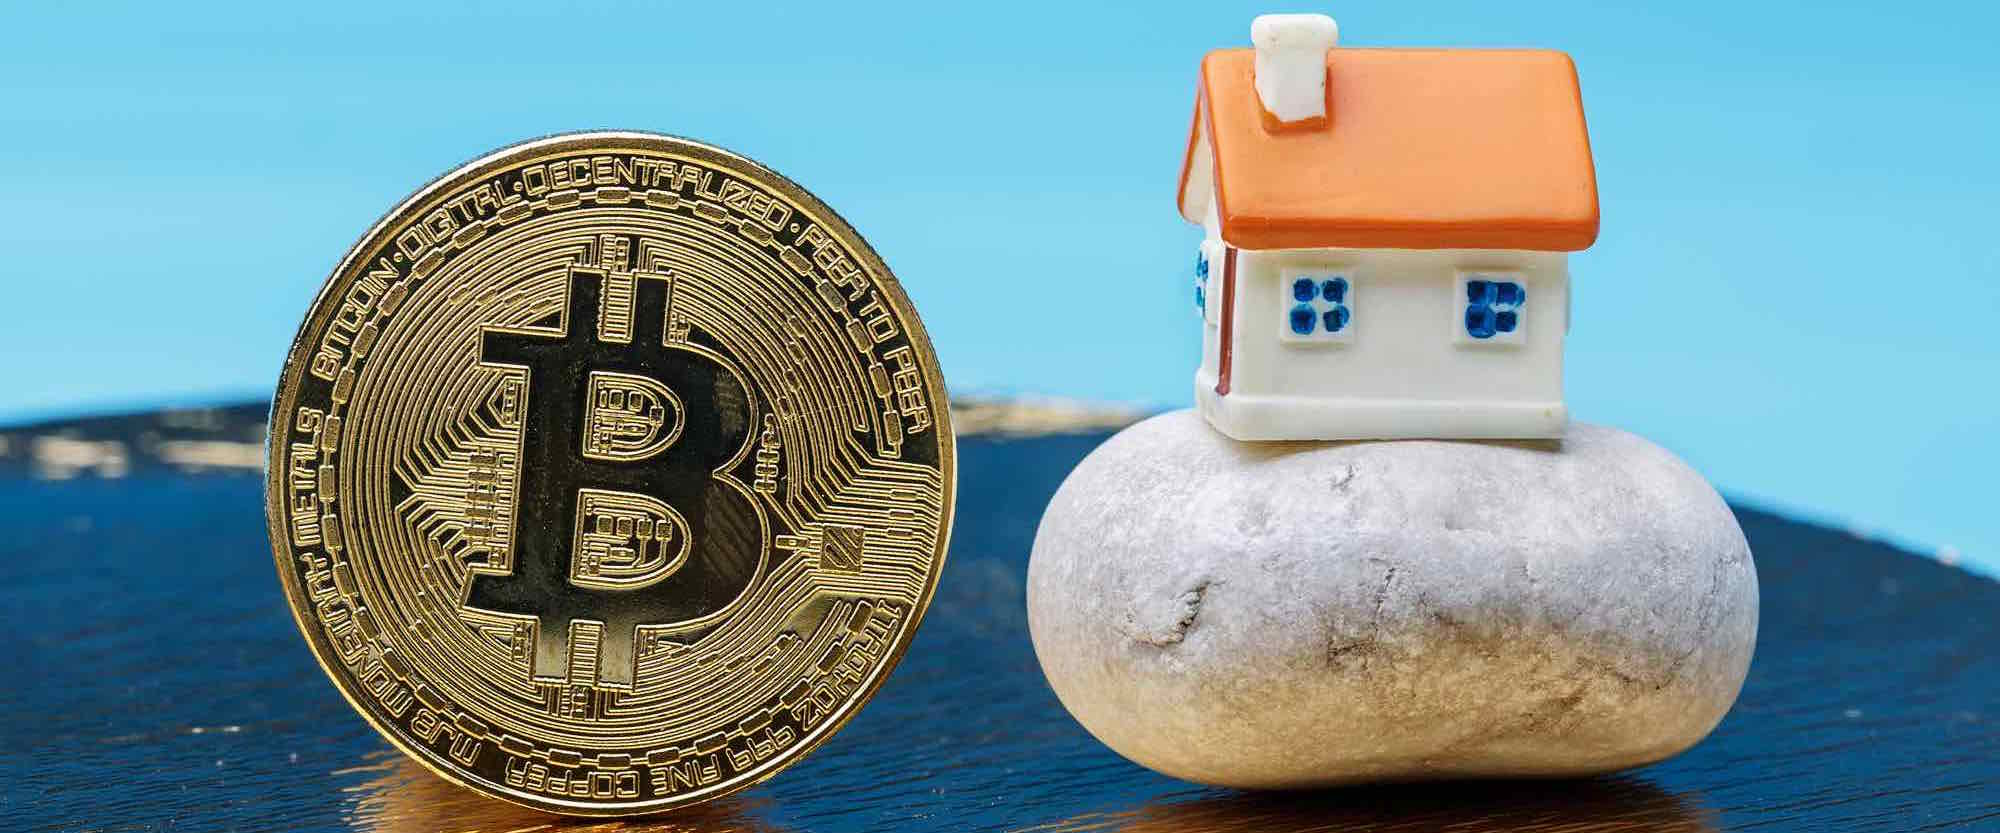 How To Protect Yourself When Buying Real Estate With Bitcoin